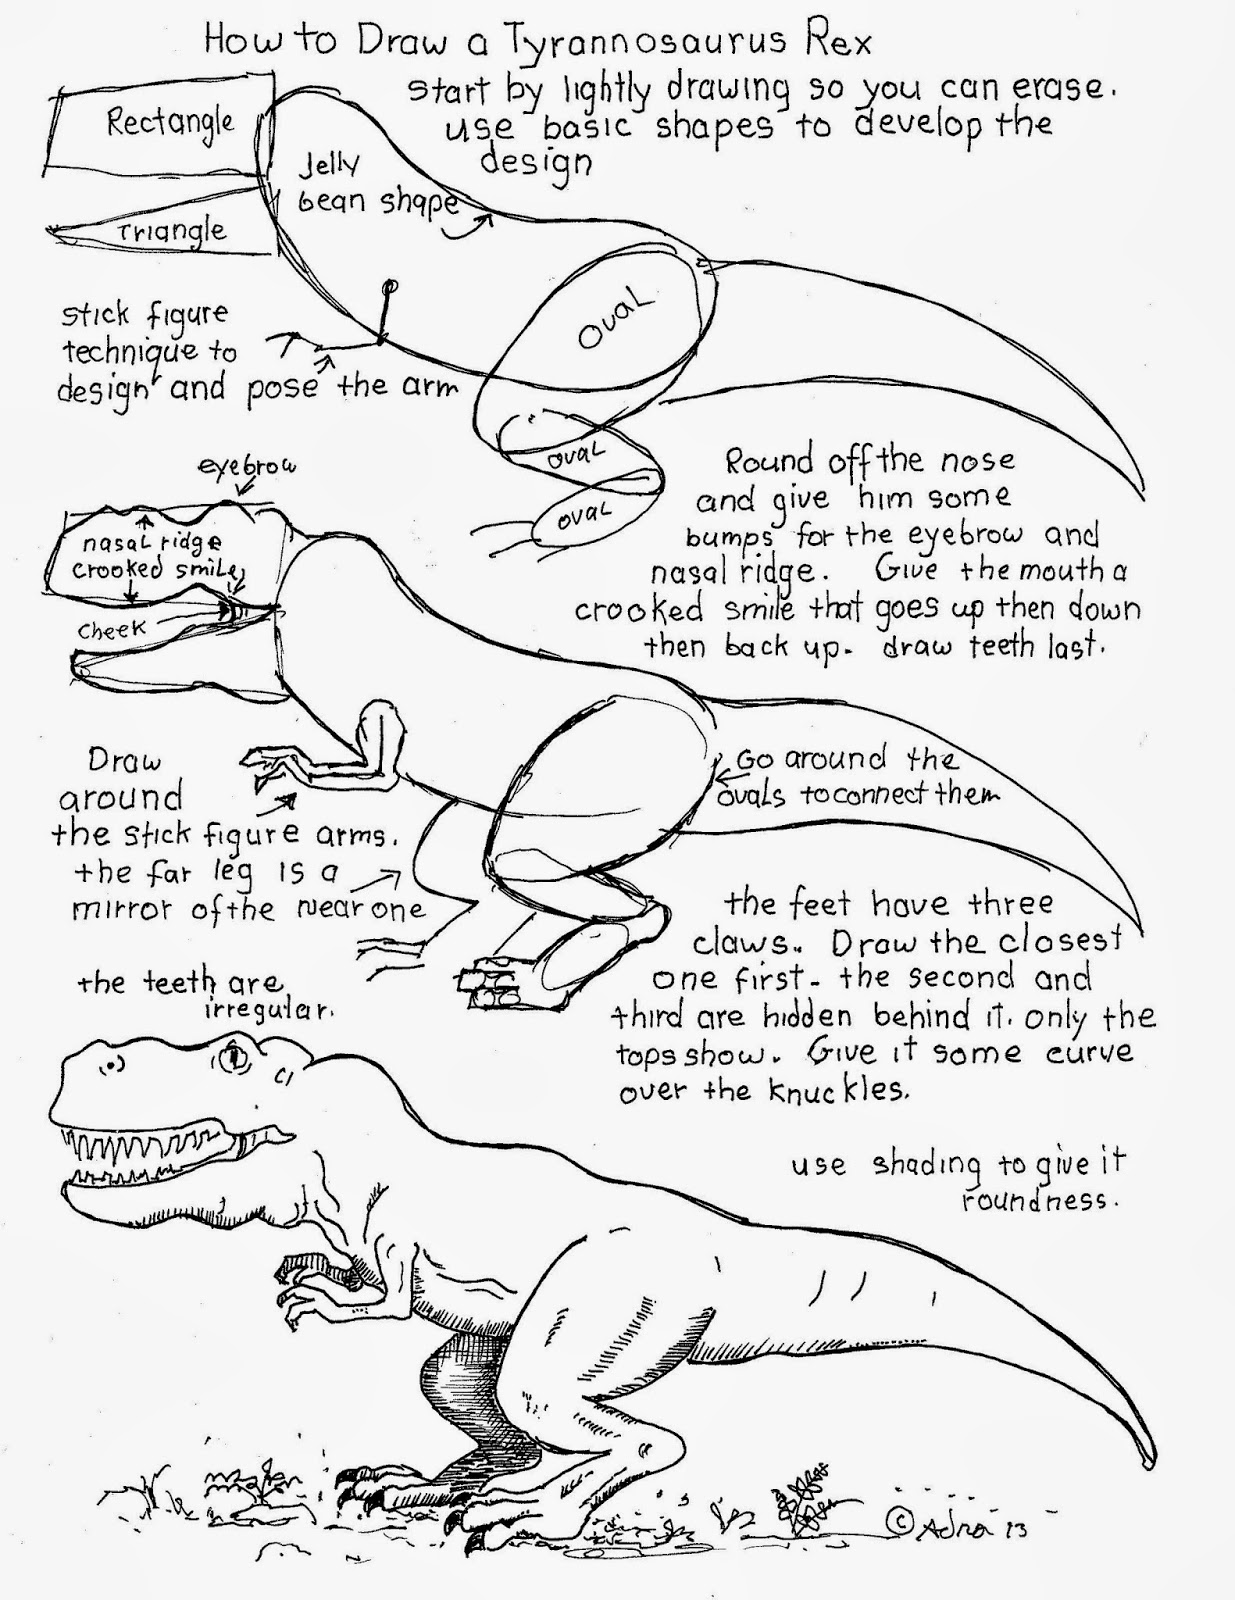 How To Draw Worksheets For The Young Artist How To Draw A Tyrannosaurus Rex Worksheet